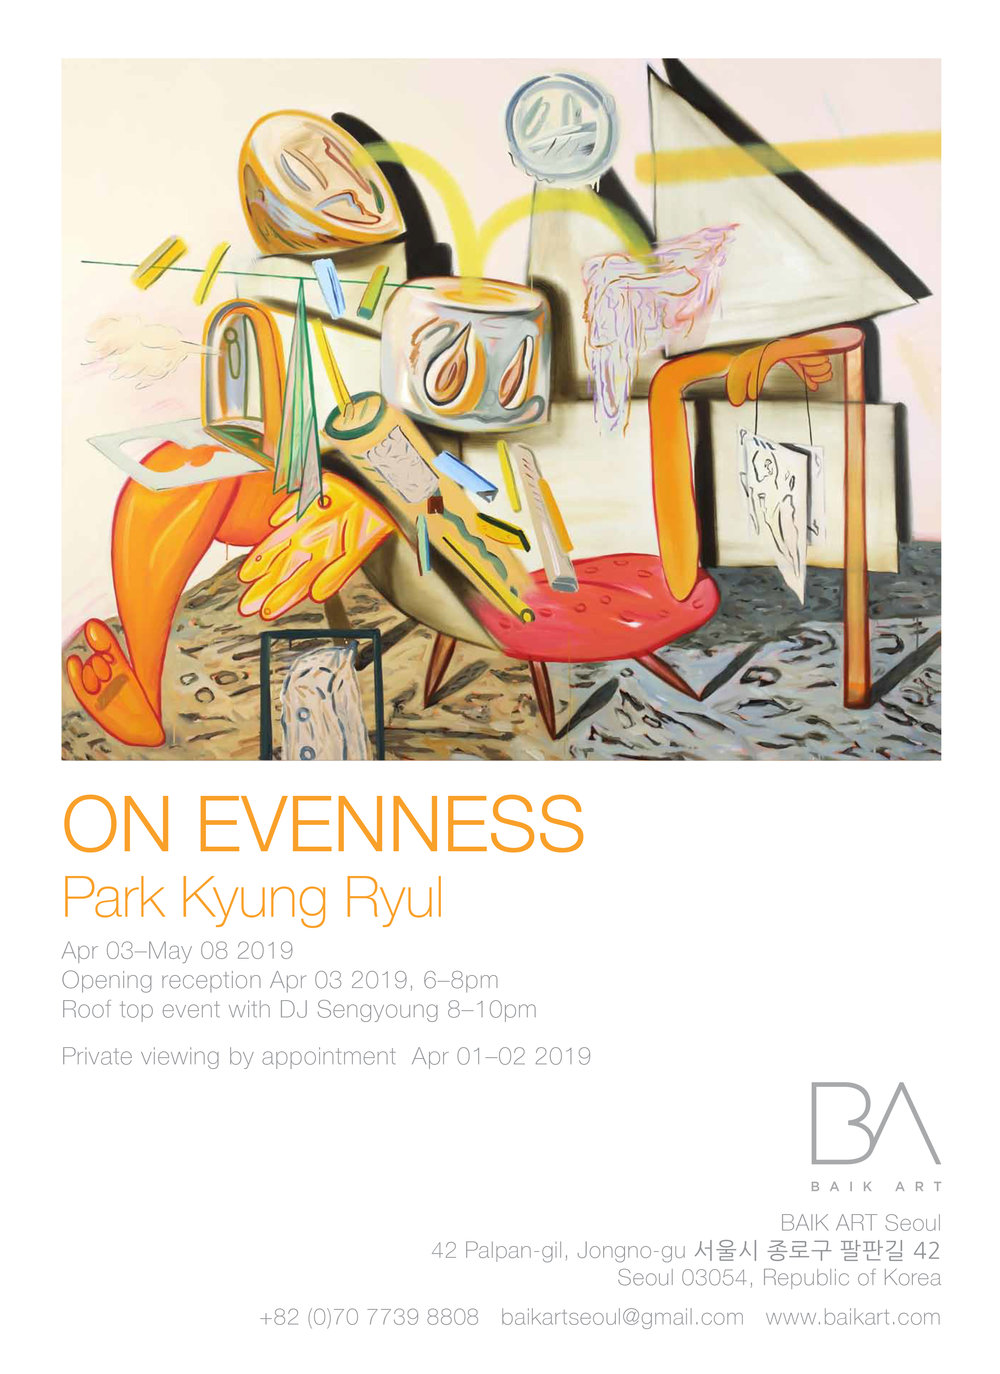 - On EvennessBaik Art Seoul Gallery03 April -08 May 2019